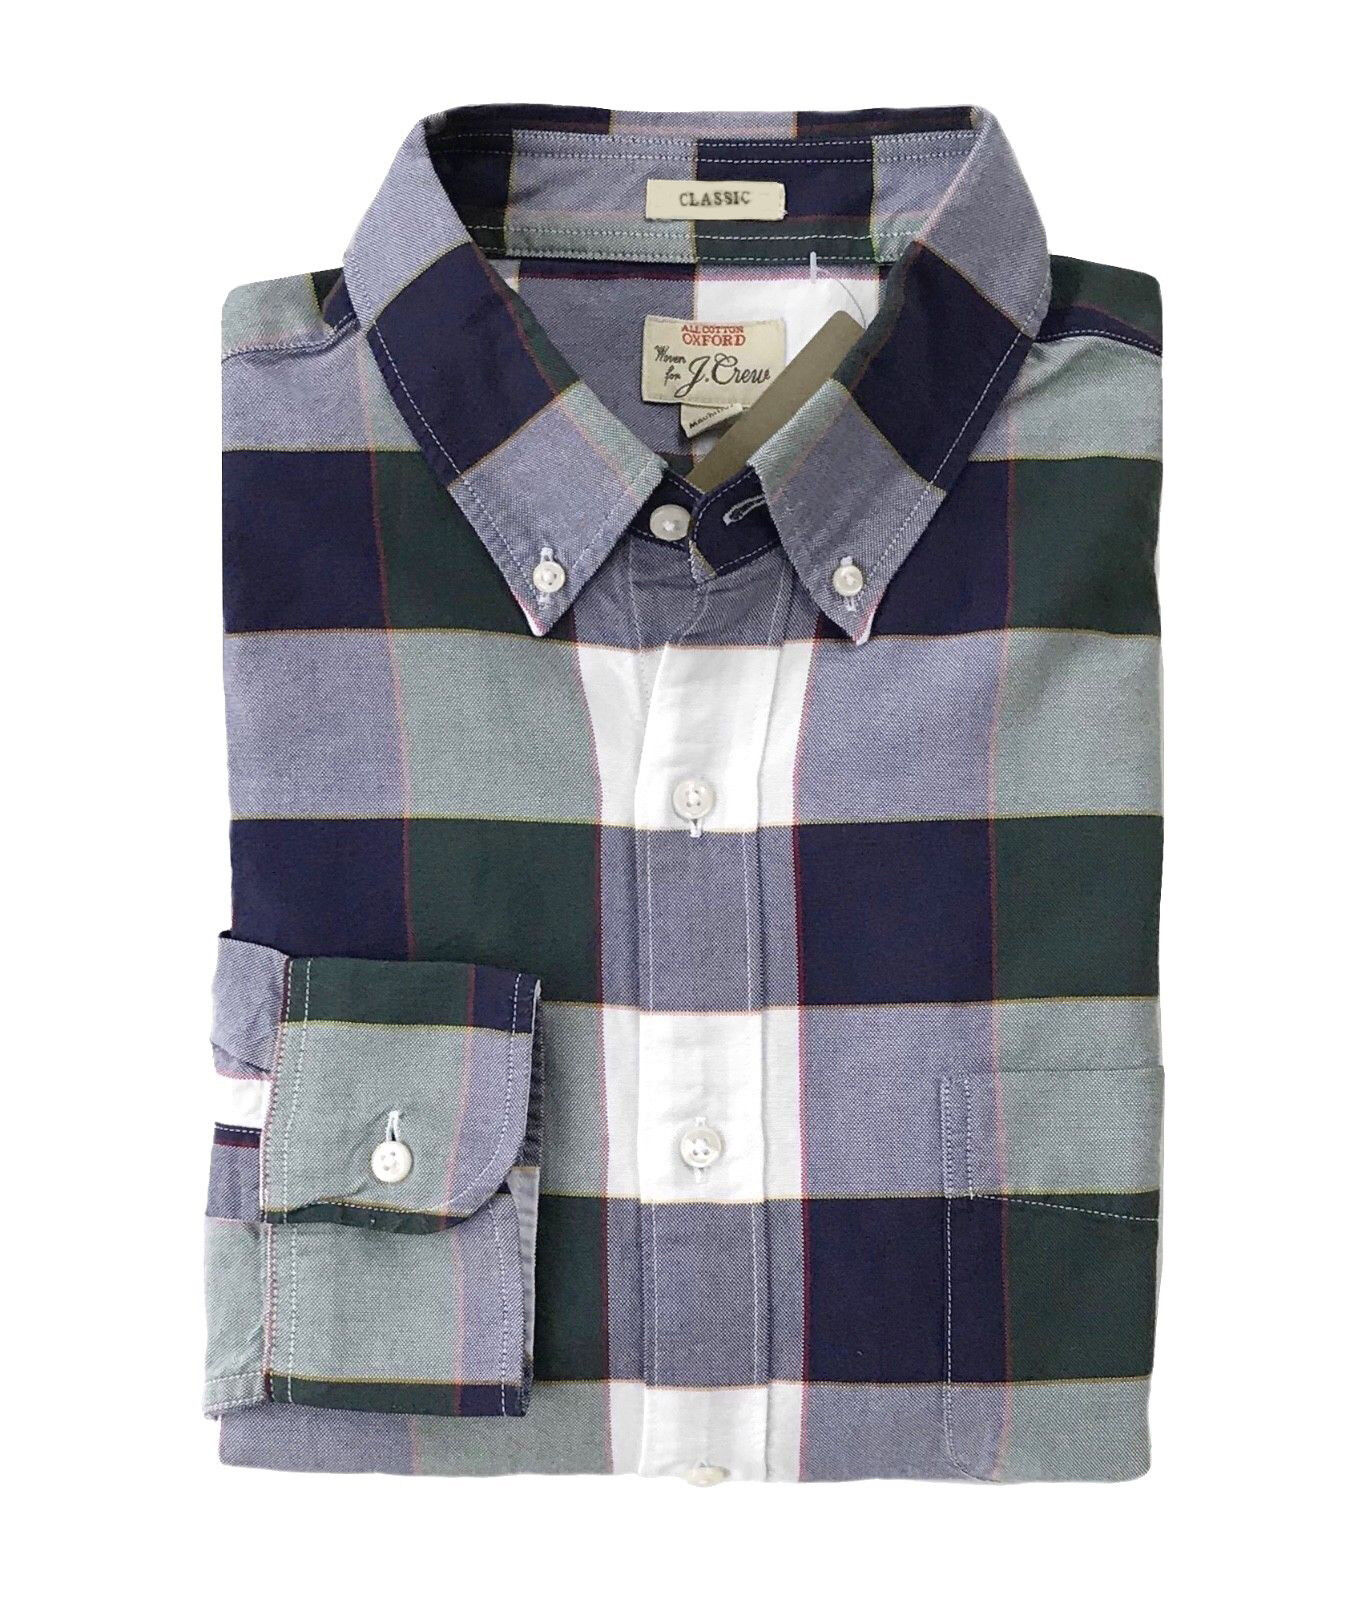 J Crew - Mens L - Classic Fit - Green Navy White Plaid Pima Cotton Oxford Shirt